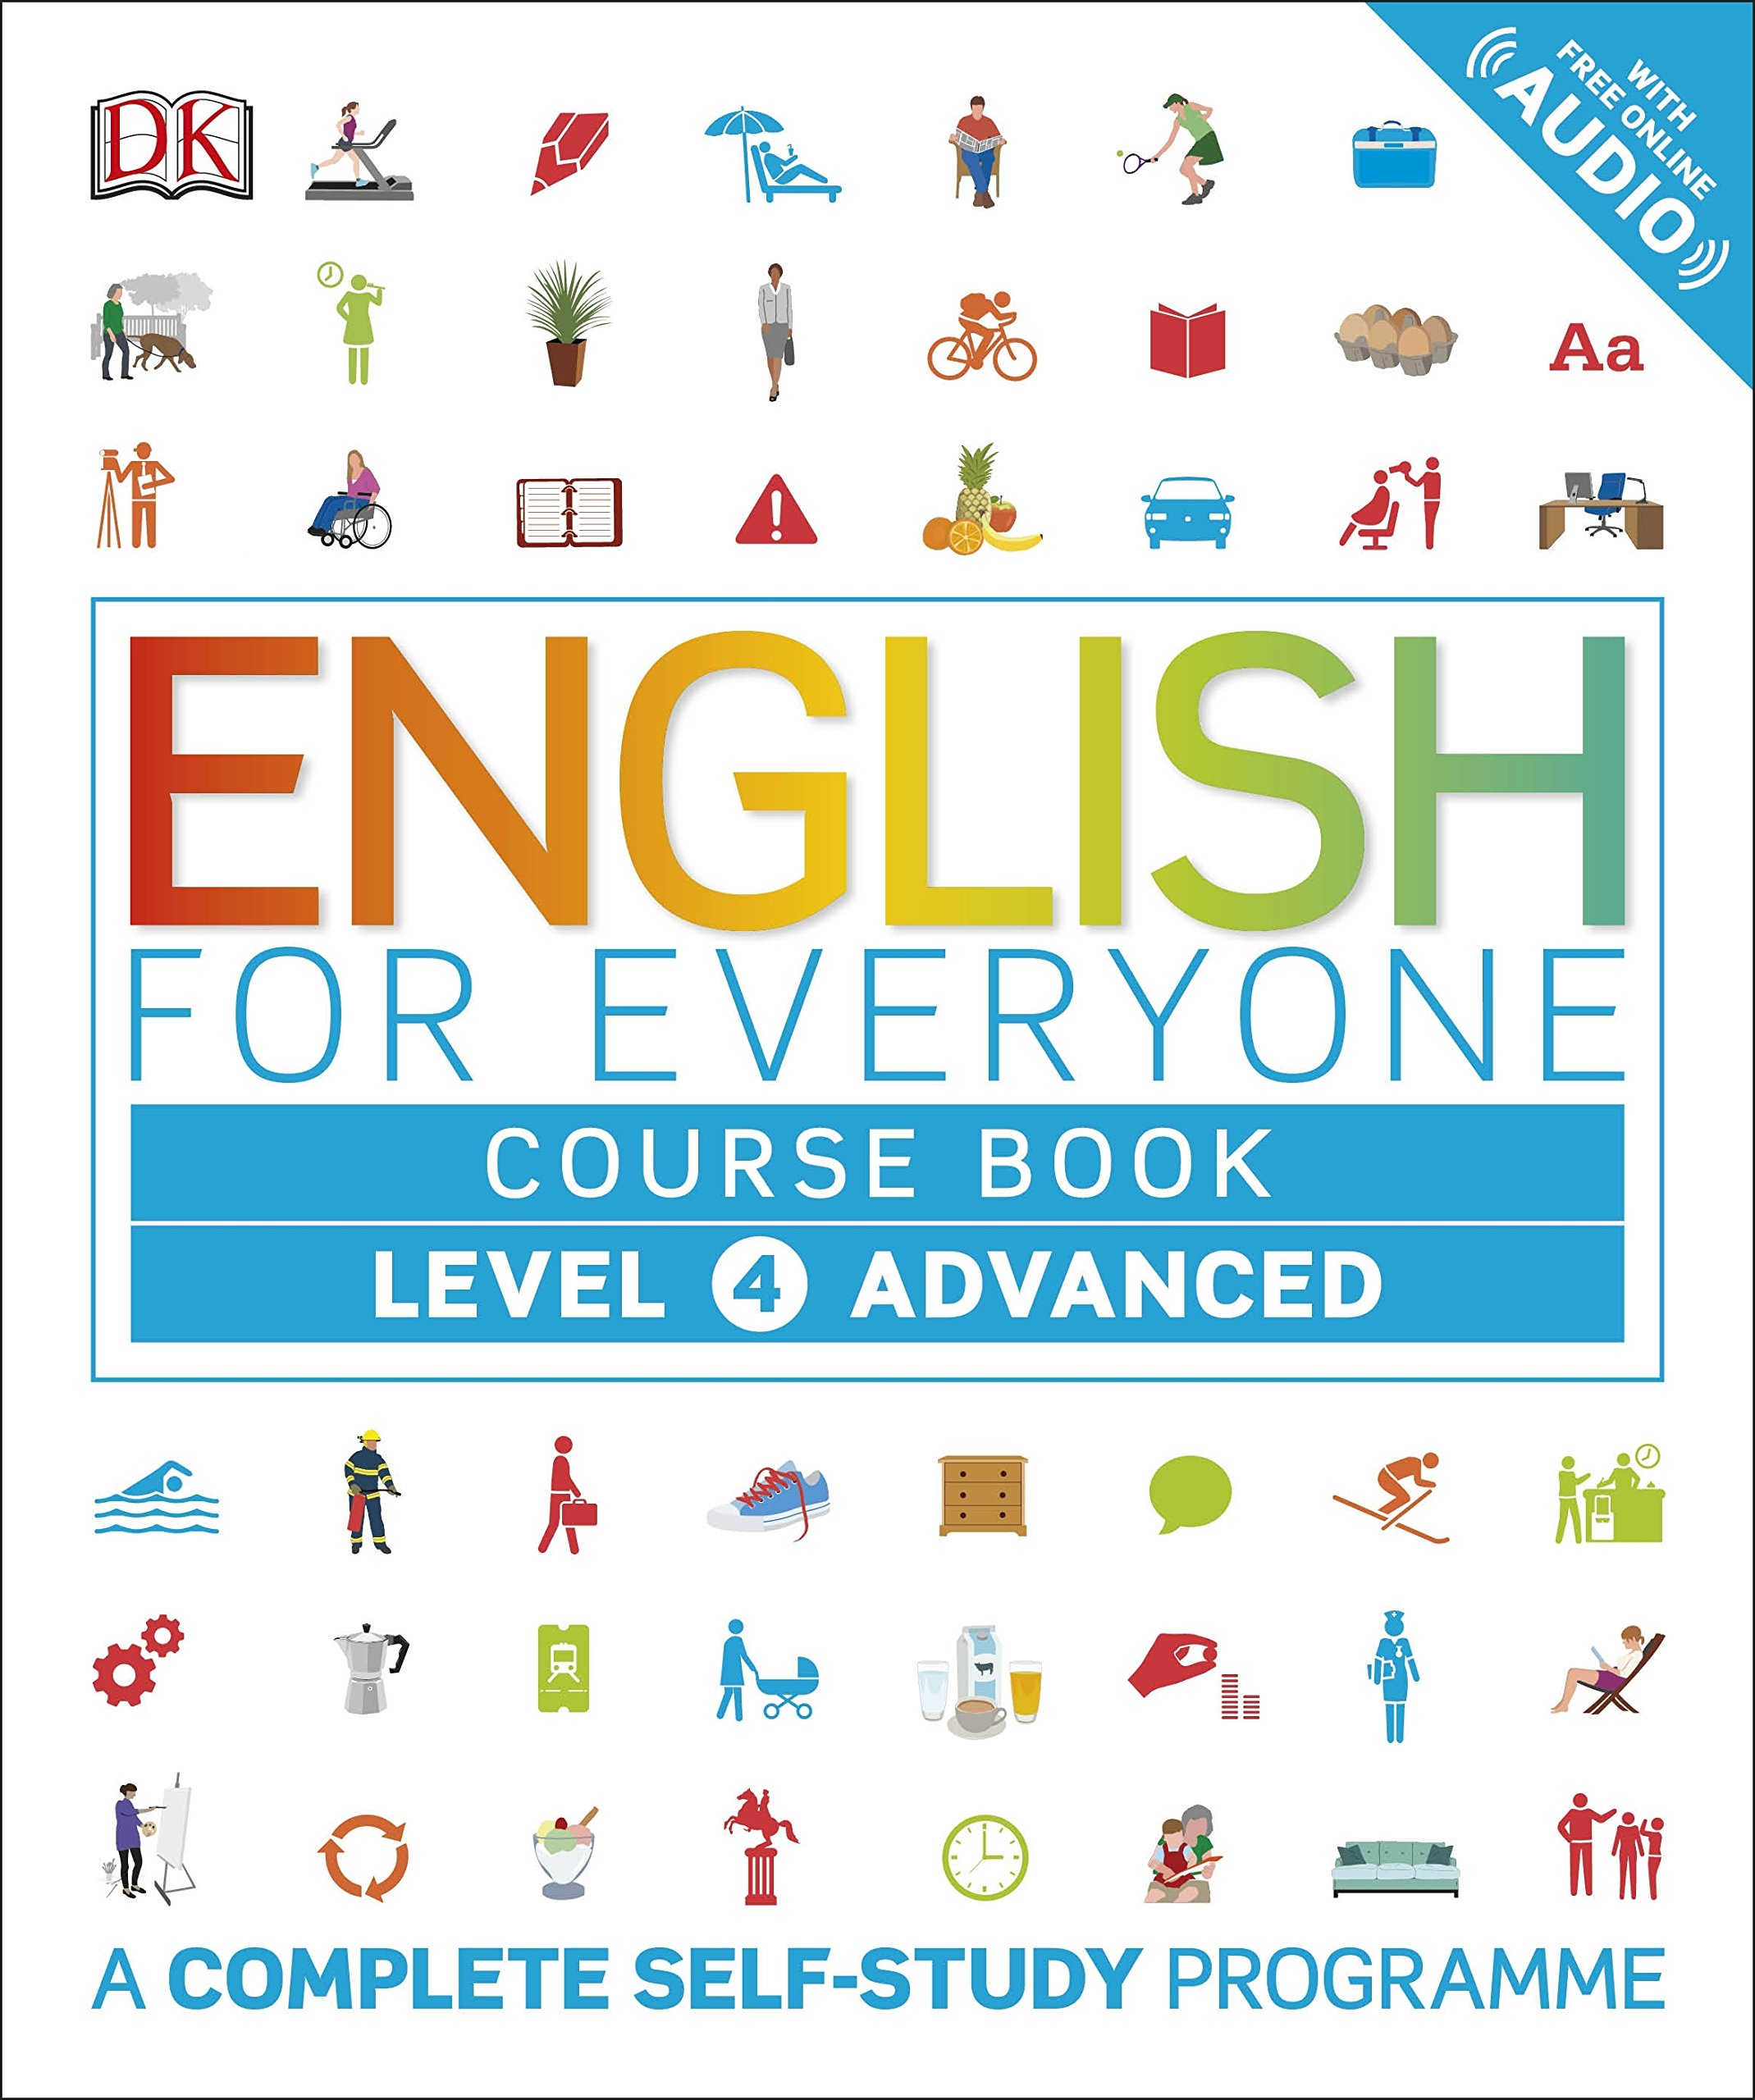 English for Everyone Course Book Level 4 Advanced: A Complete Self-Study  Programme: Amazon.de: DK: Fremdsprachige Bücher